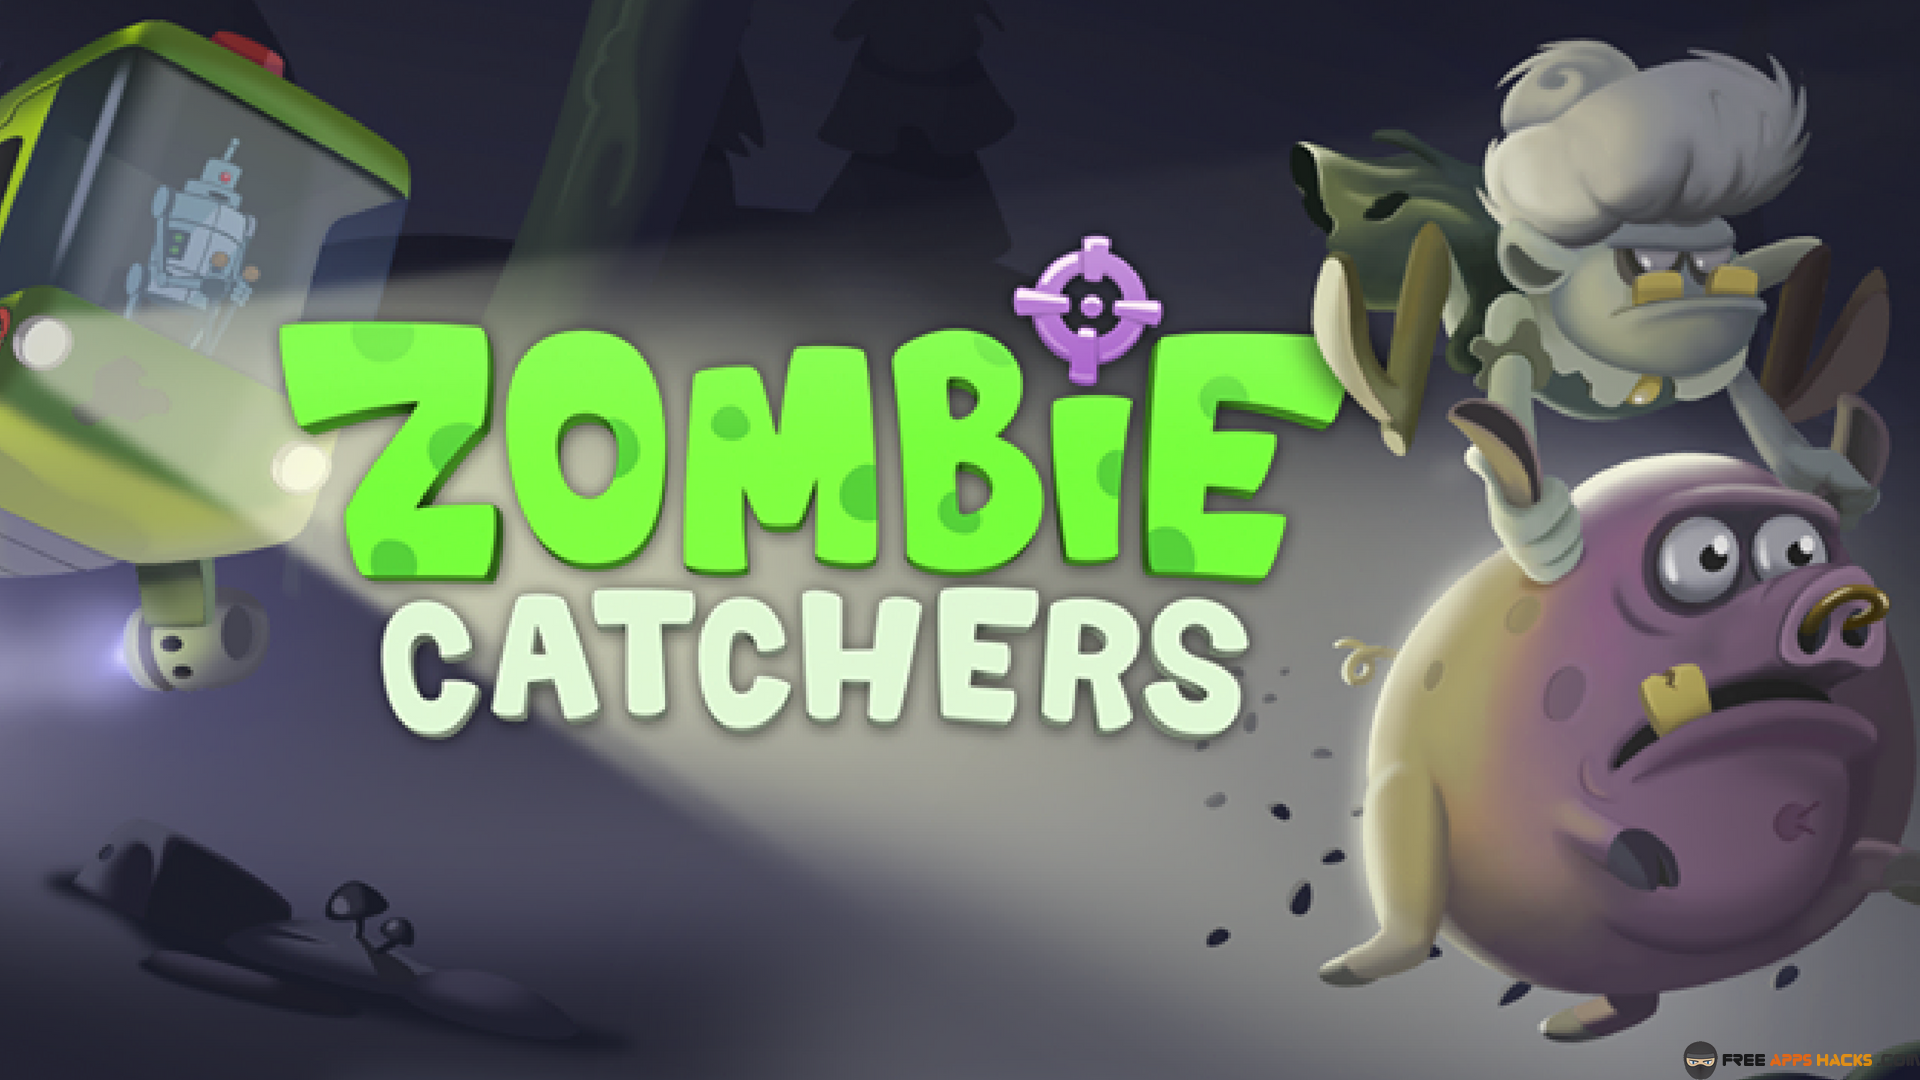 Zombie Catchers Modded APK Unlimited Money Android App - Free App Hacks